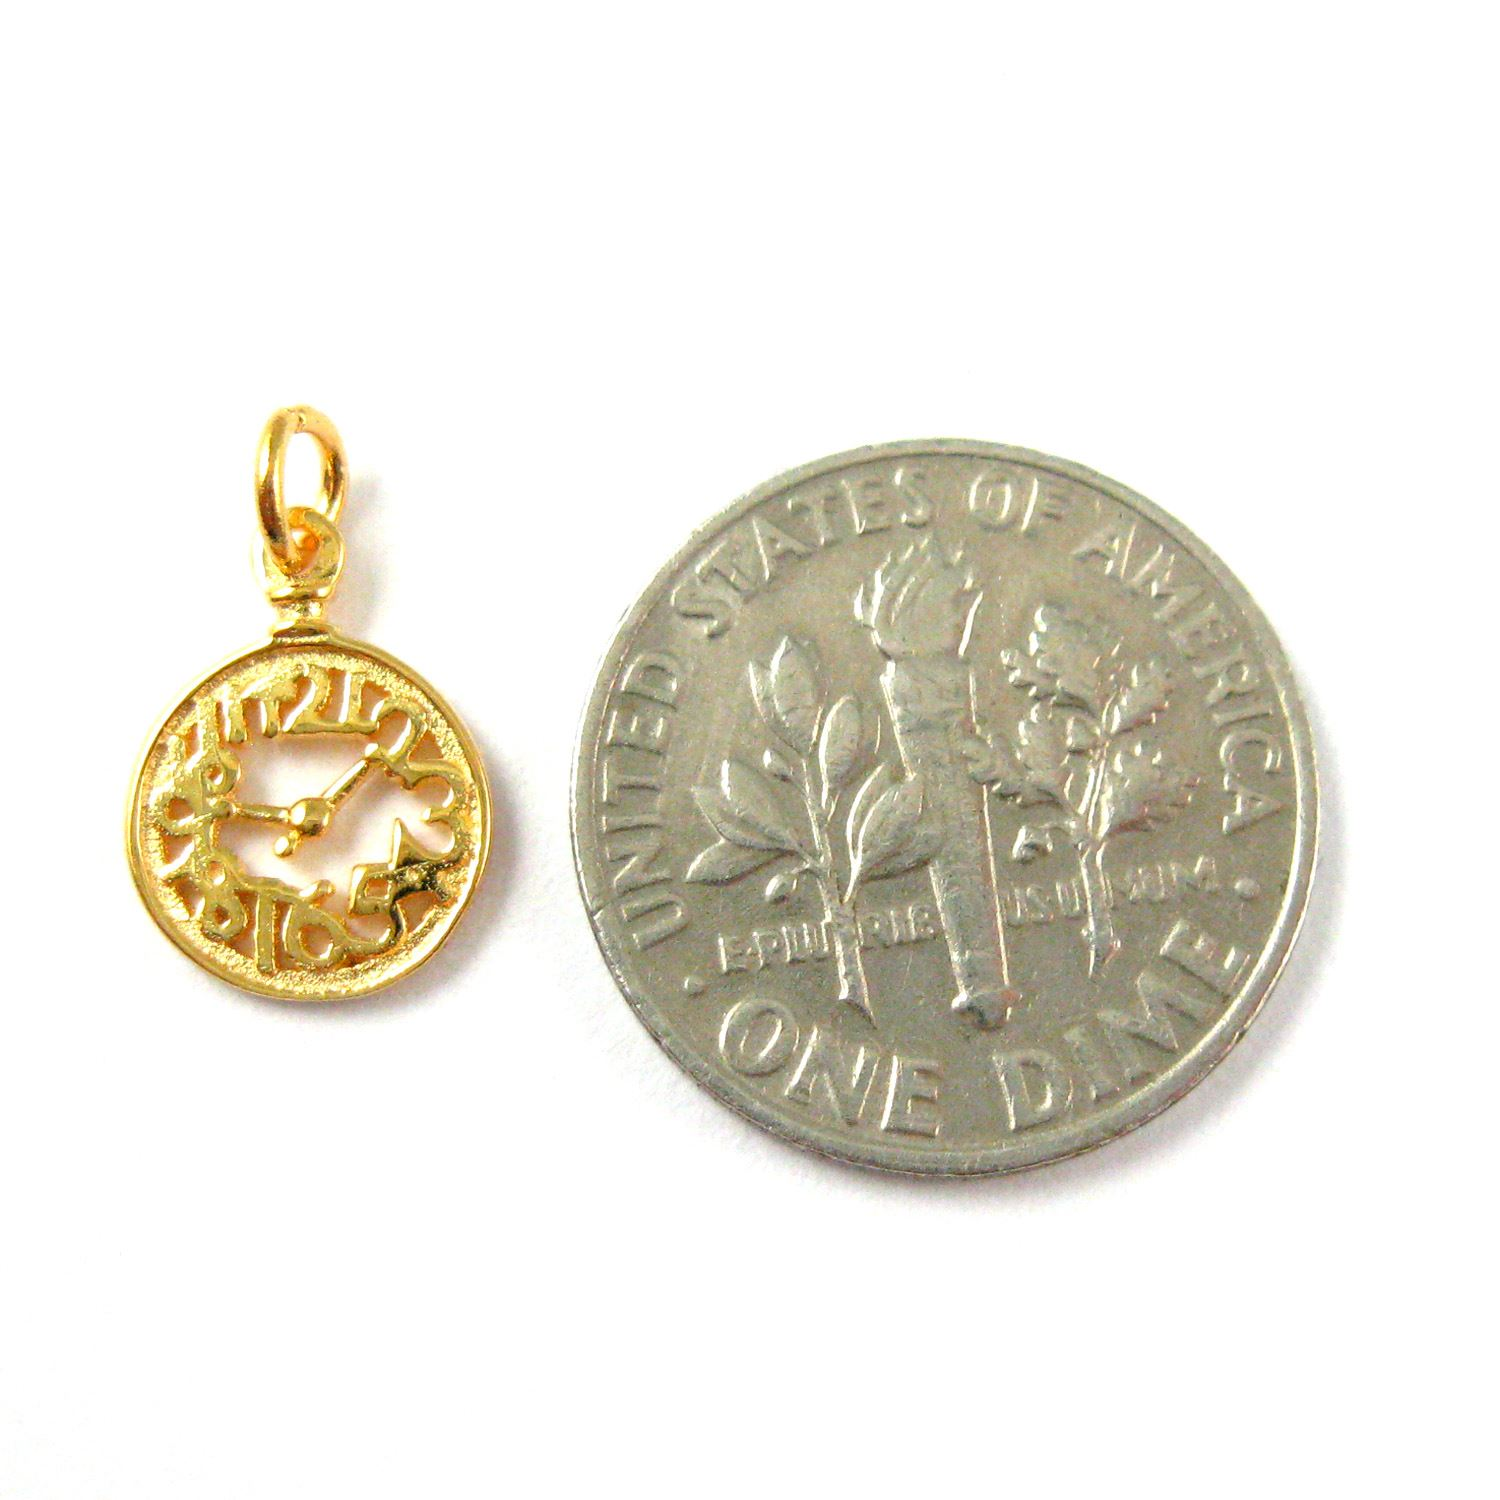 22K Gold plated 925 Sterling Silver Charm-High Polish Vermeil Clock Charm- Tiny Gold Pocket Watch Charm -8mm (2 pcs)